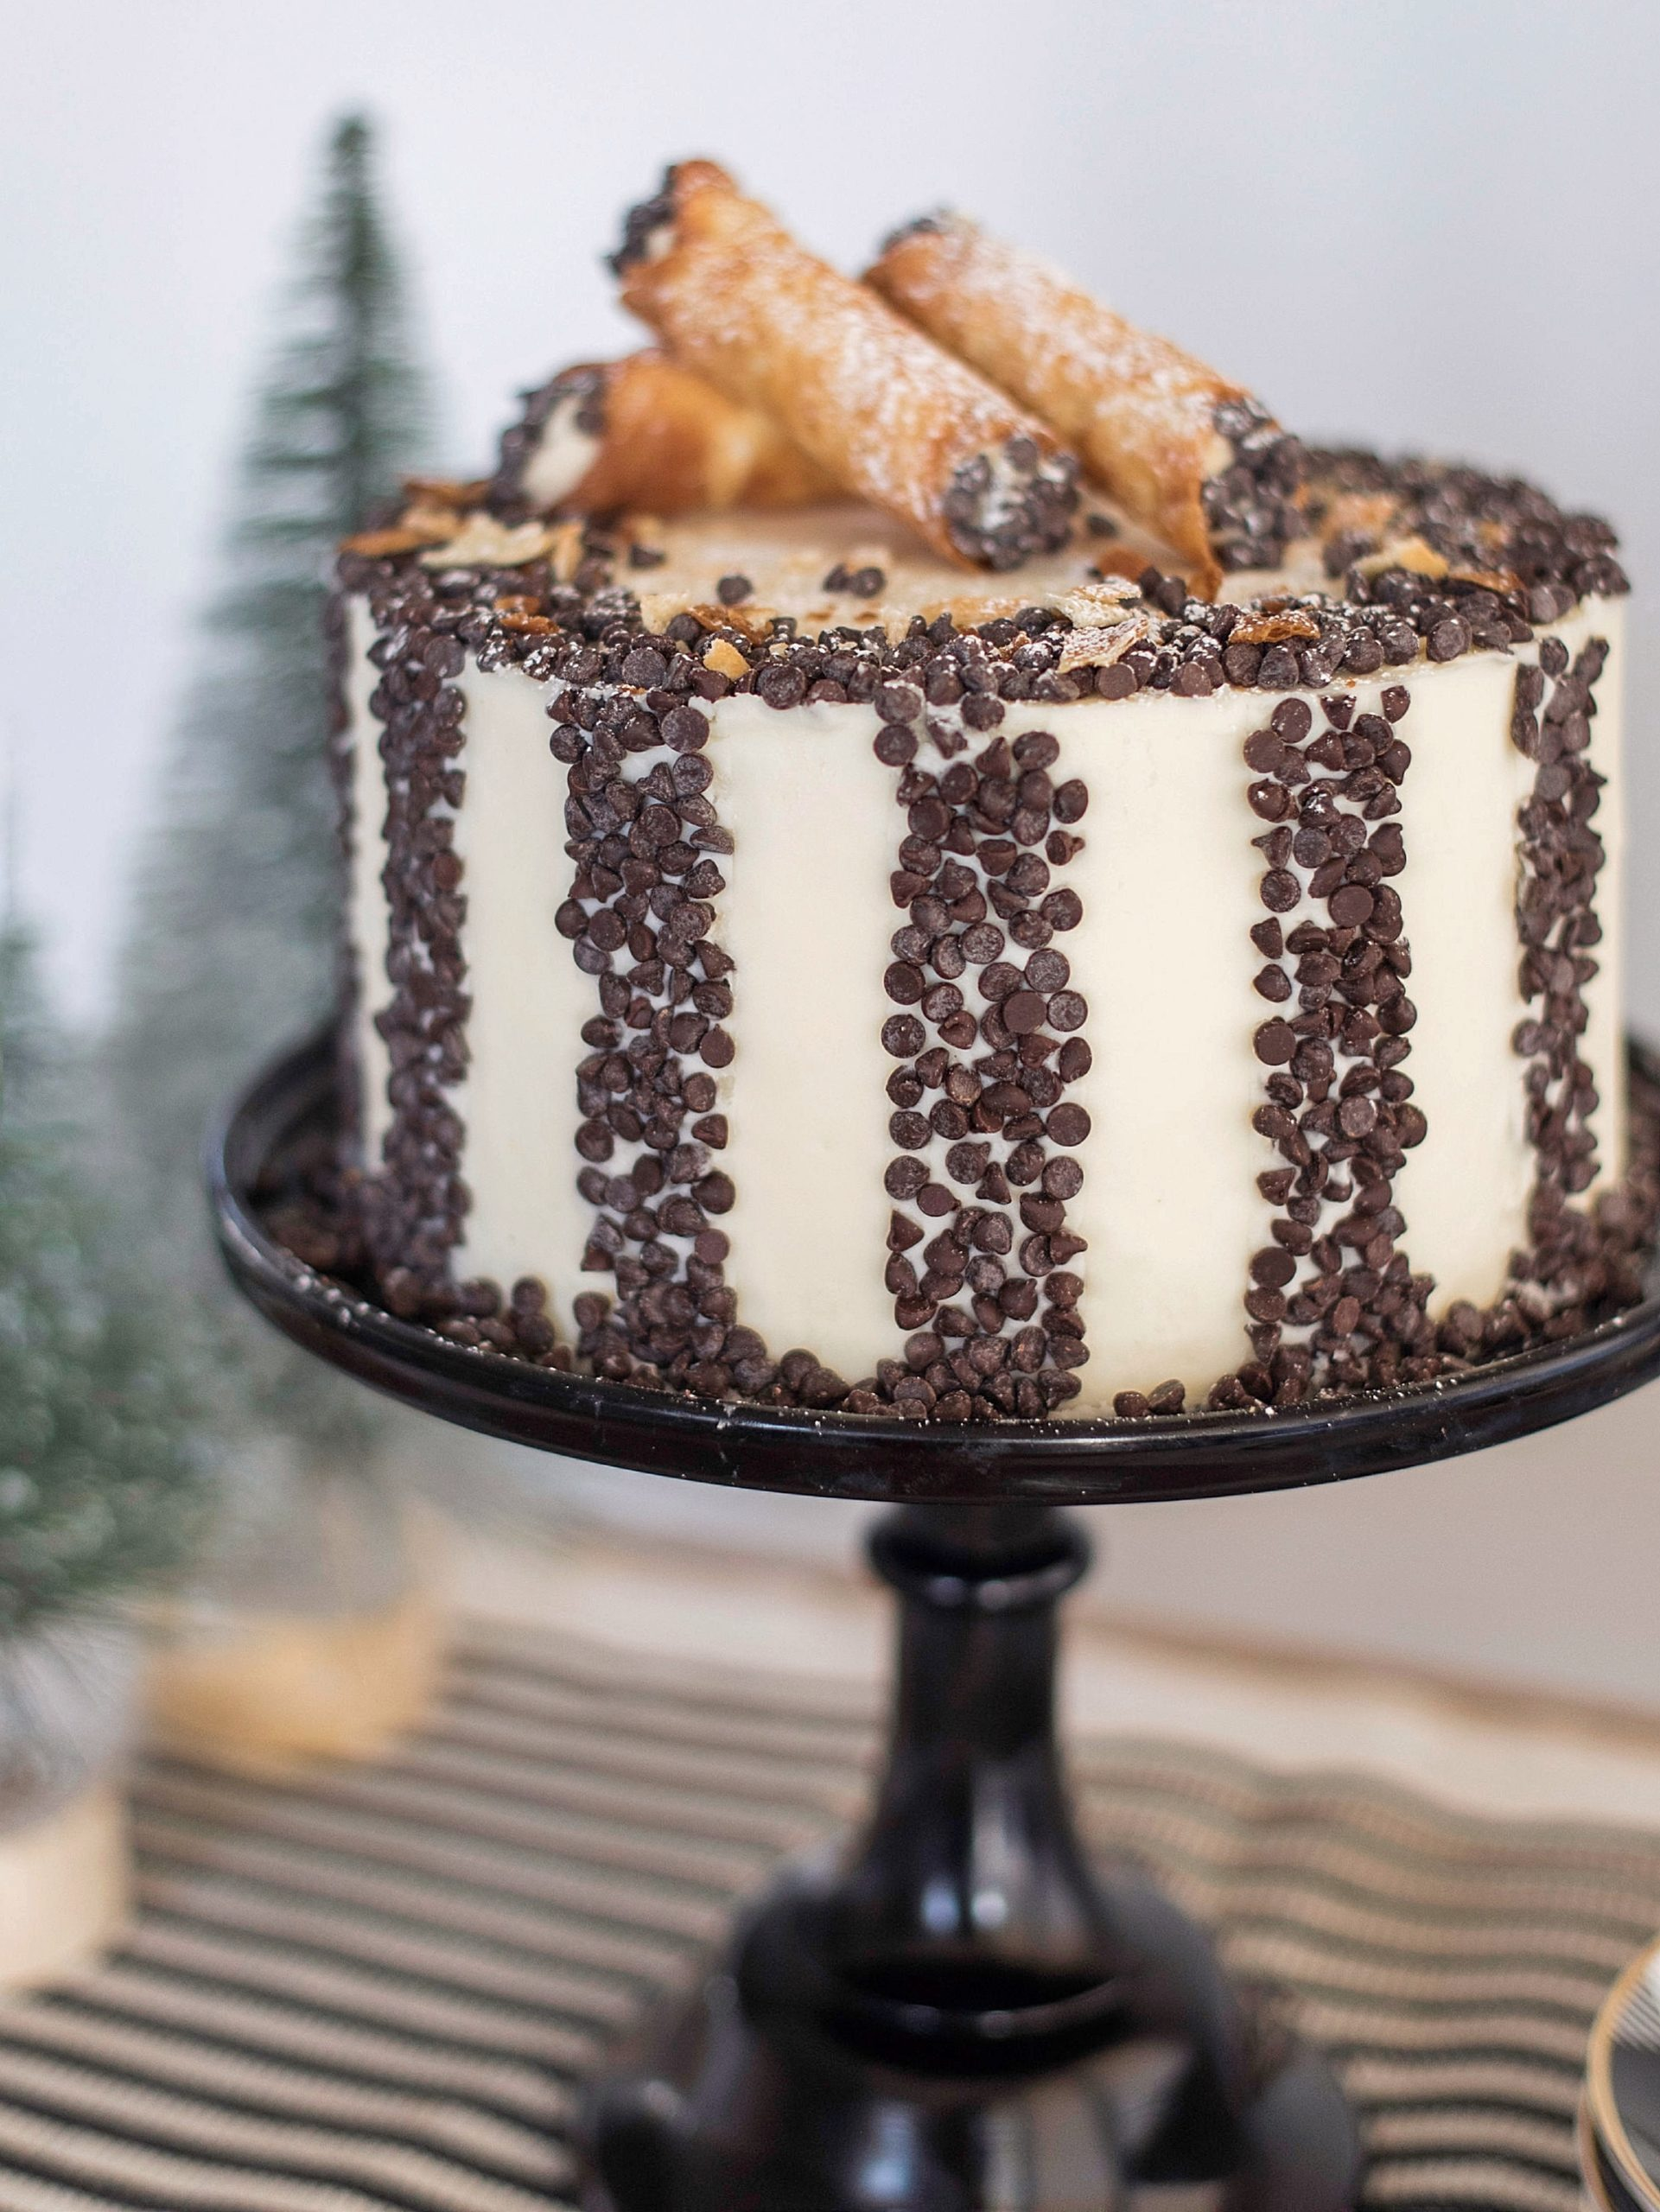 Delicious white cake layers with a hint of cinnamon, a creamy sweet ricotta filling with chocolate chips and vanilla buttercream. #cannoicake #cannolirecipe #homemadecannoli #christmascake #christmasdessert #holidaydessert #christmasdessertideas #christmascakeideas #cakebycourtney